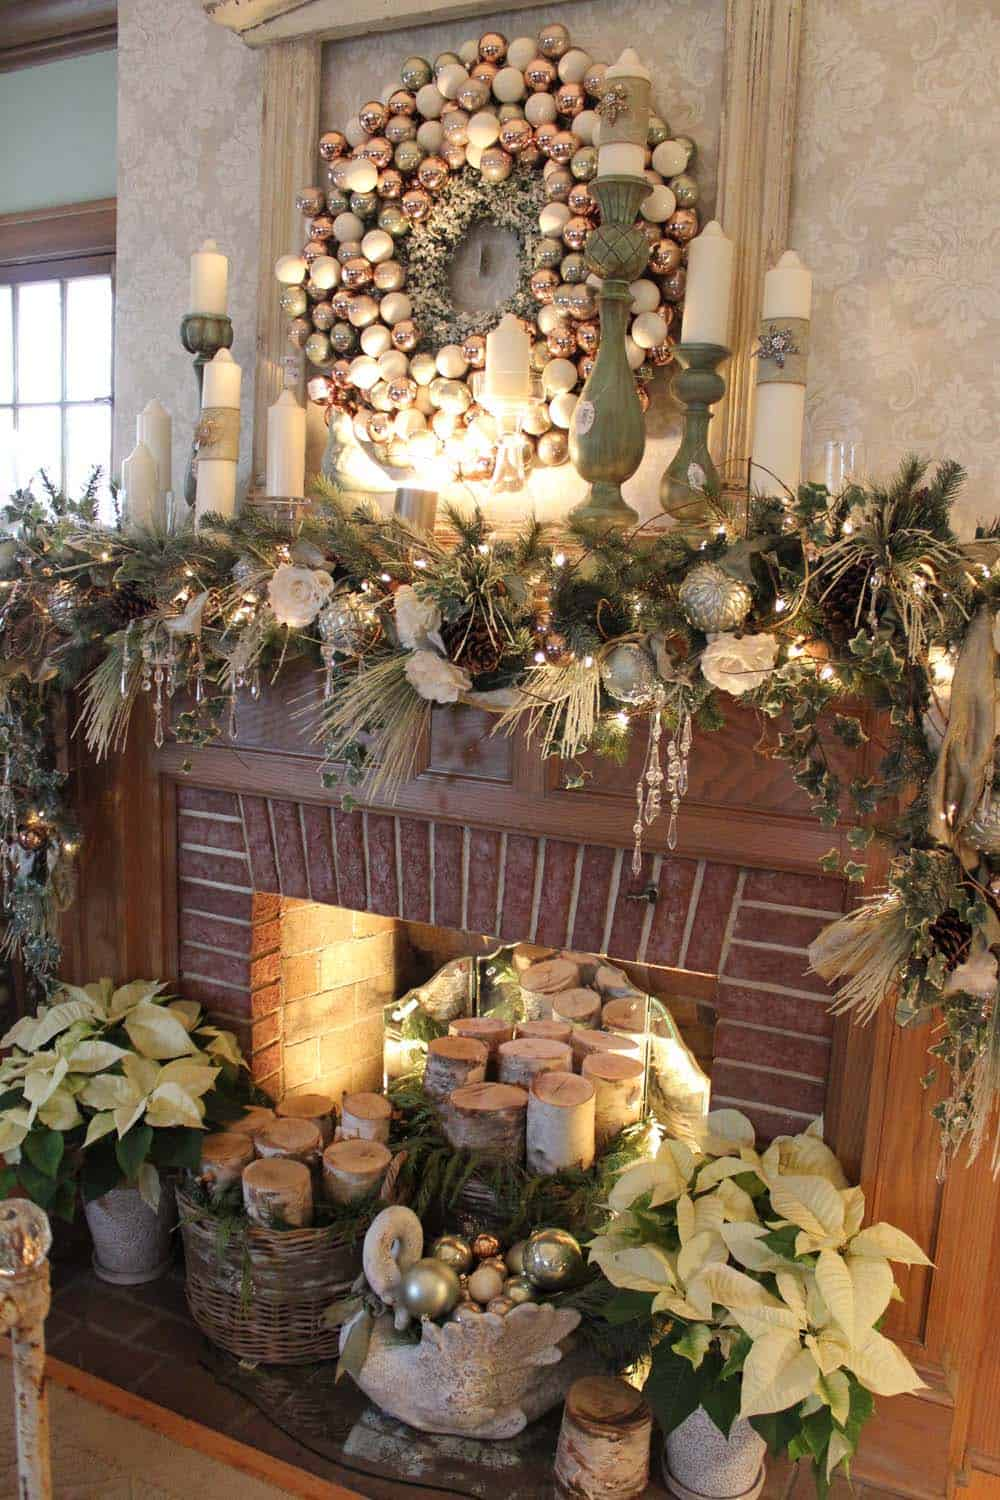 Design Christmas Mantel Ideas 50 absolutely fabulous christmas mantel decorating ideas 57 1 kindesign